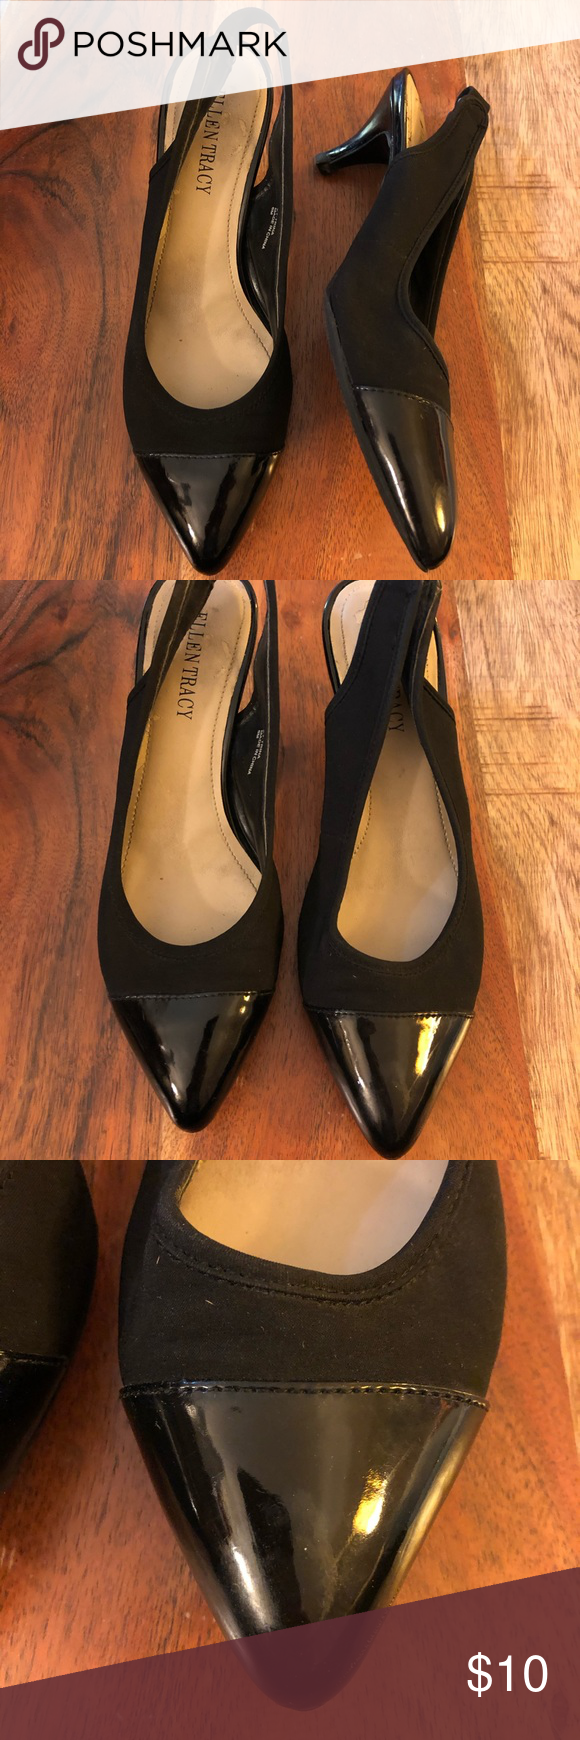 Ellen Tracy 2 Tone Black Sling Back Heels Sz 6 Shoes Women Heels Heels Kitten Heels